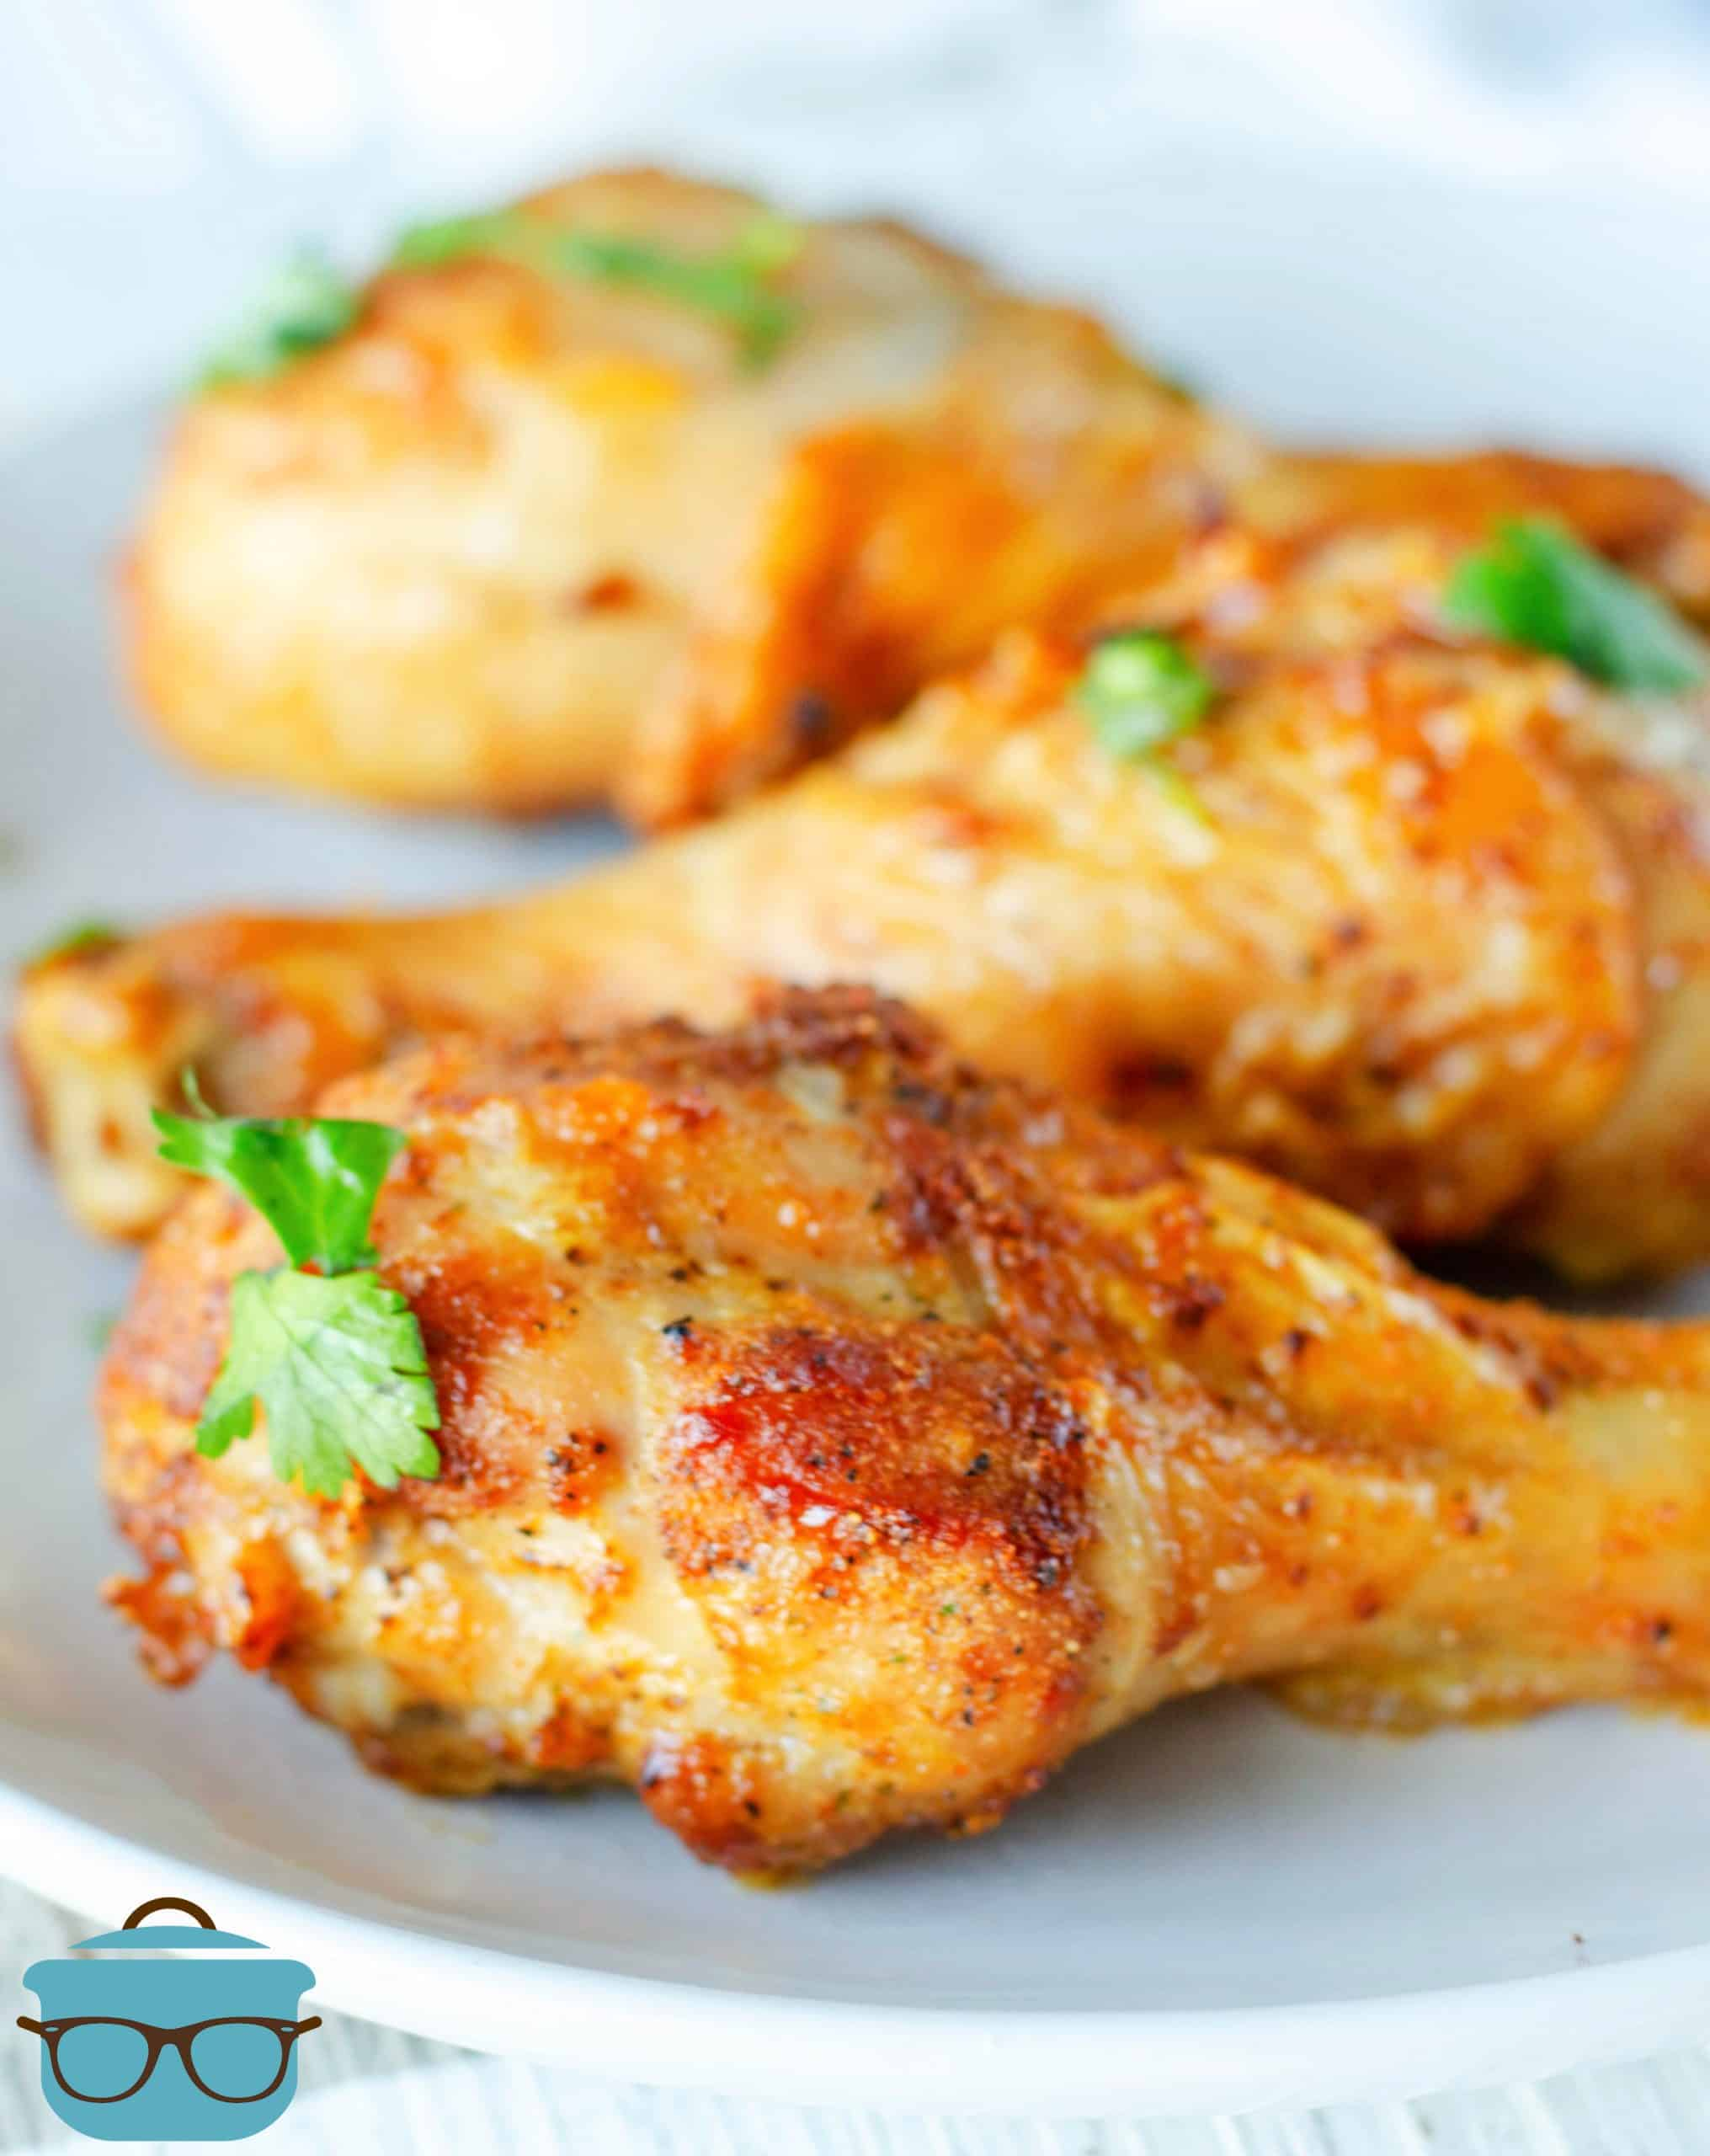 Close up side view of Air Fryer Drumsticks on white plate